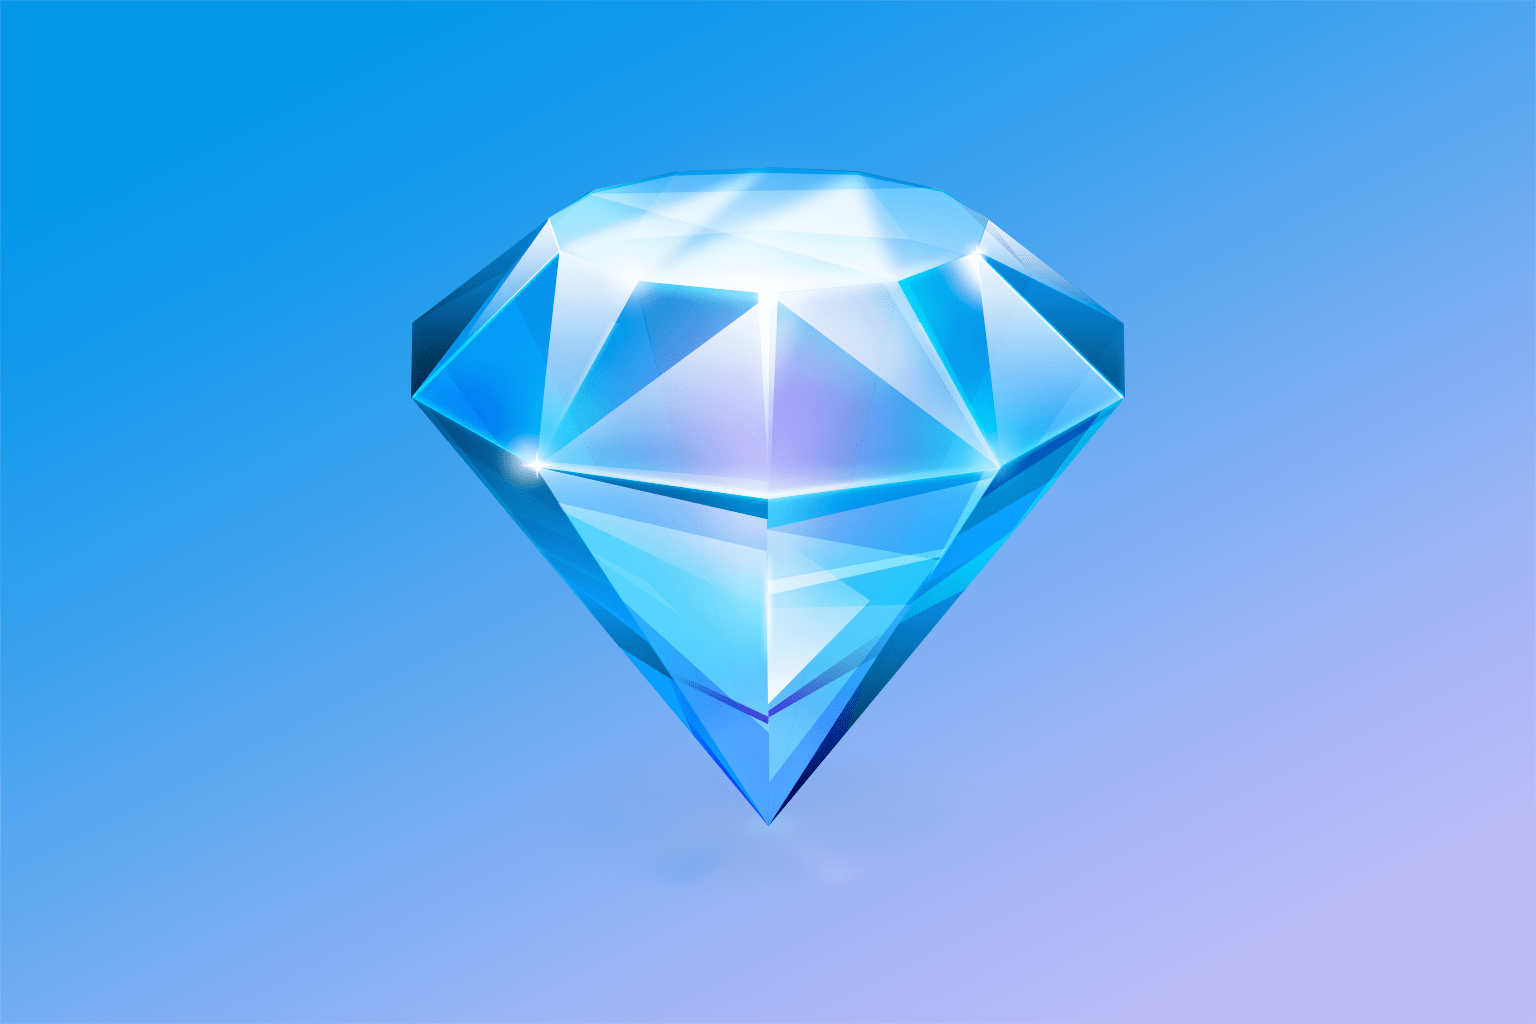 A blue version of the original Sketch 1.0 icon